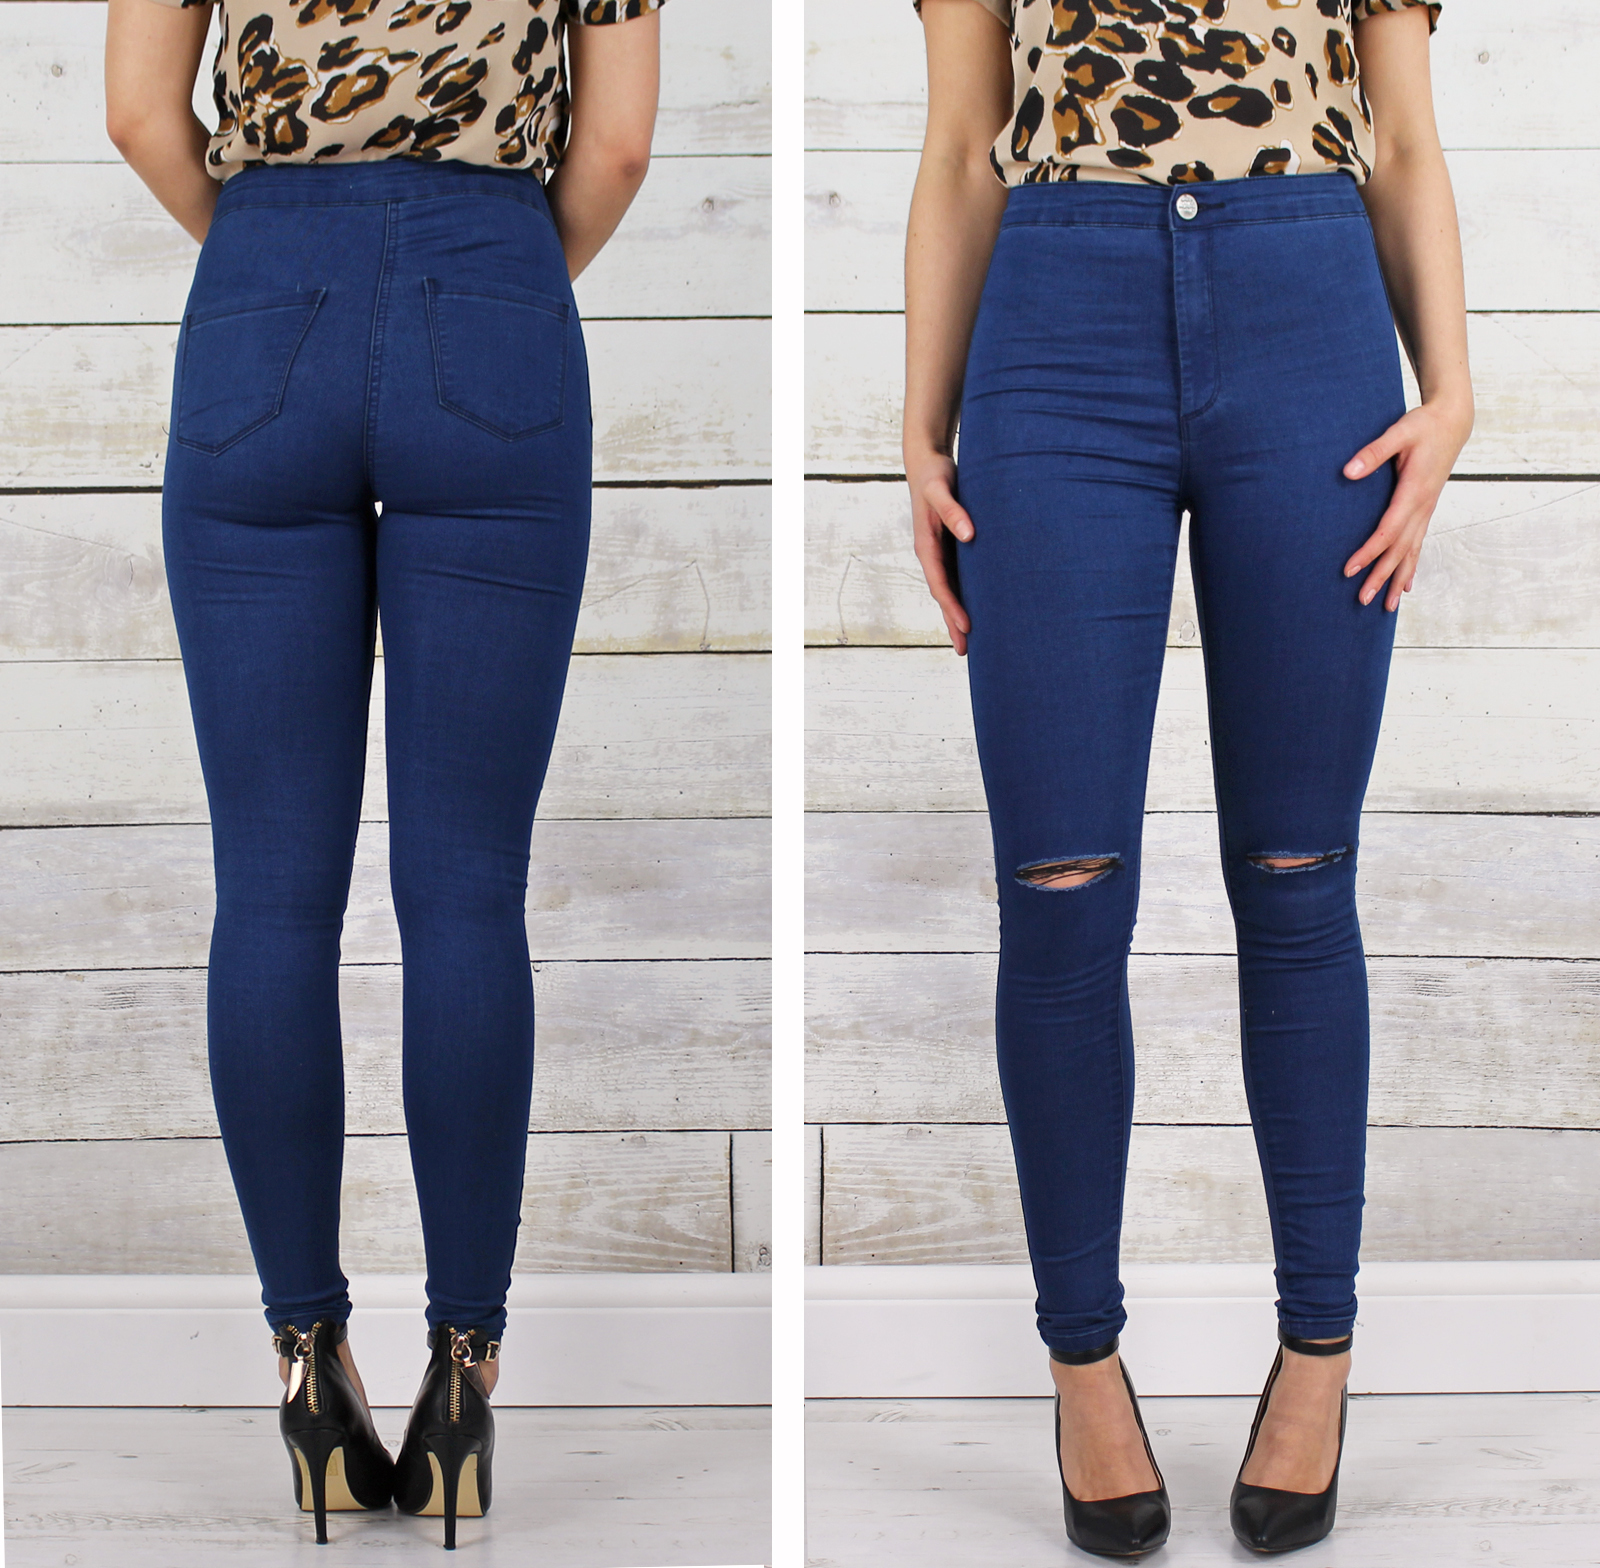 Jegging or jeans